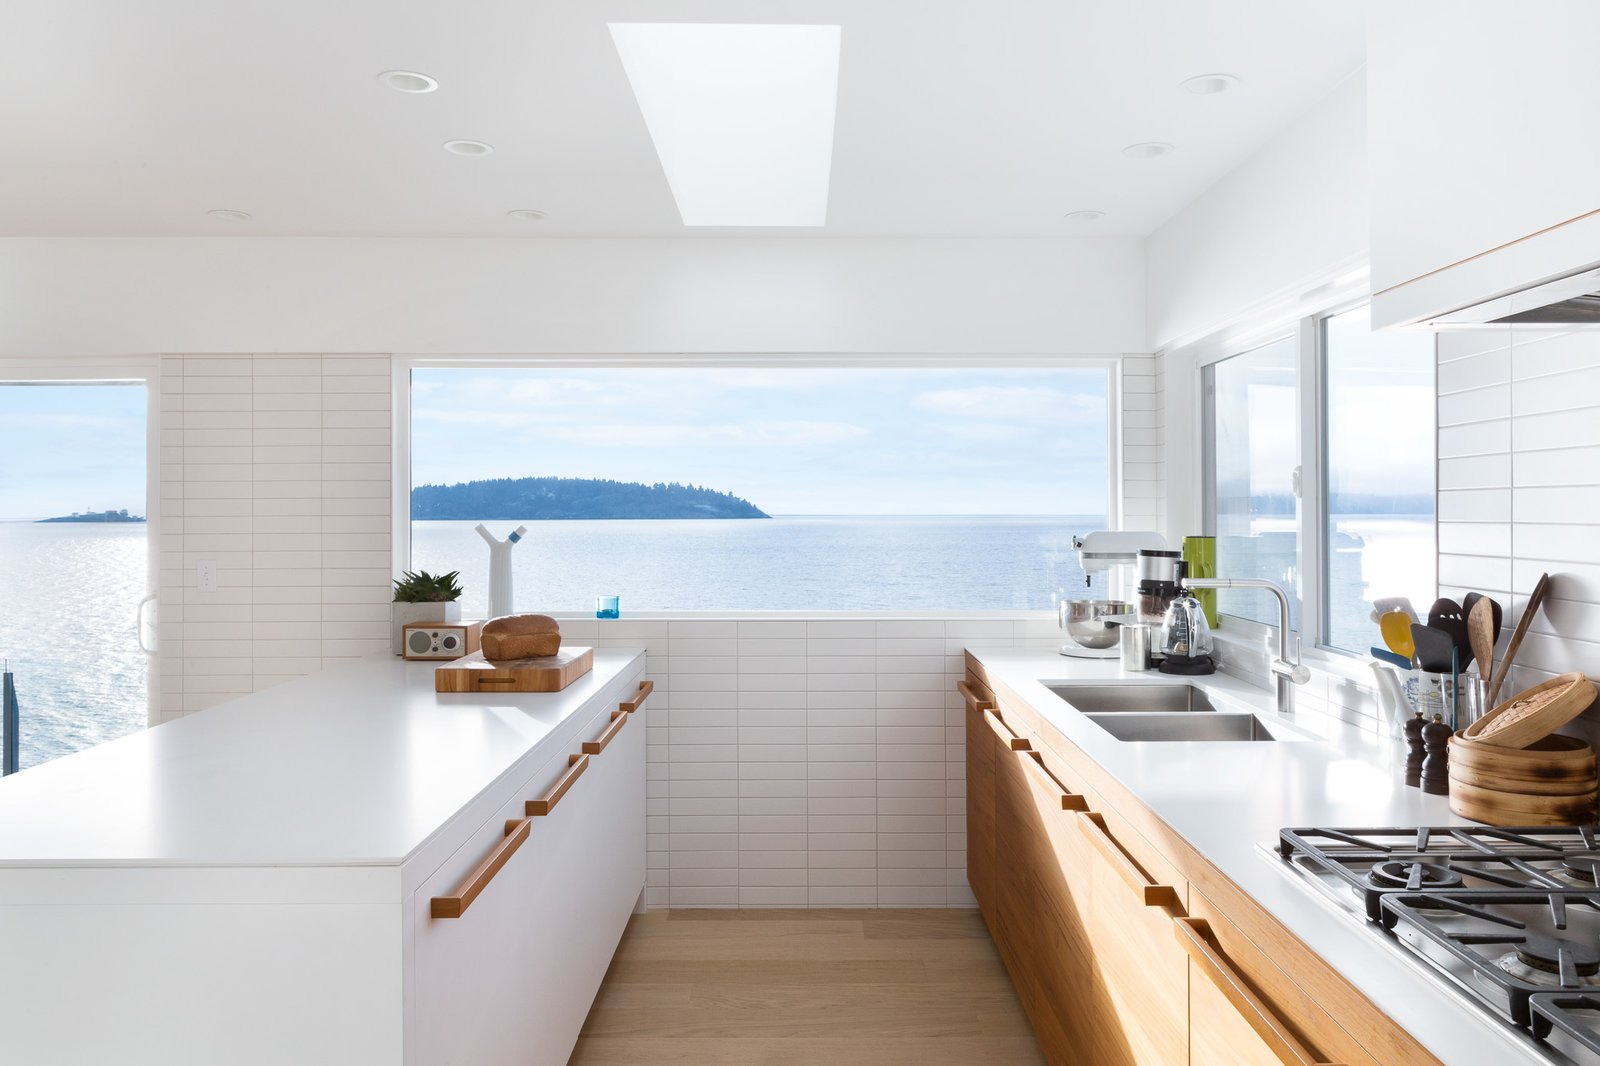 Kitchen A young Vancouver family asked Falken Reynolds Interiors to convert their waterfront vacation home on British Columbia's Sunshine Coast into their primary residence. To facilitate livability for the foursome, an enlarged kitchen, complete with a large white island with wood hardware, was a major part of the renovation.  Halfmoon Bay House by Falken Reynolds Interiors